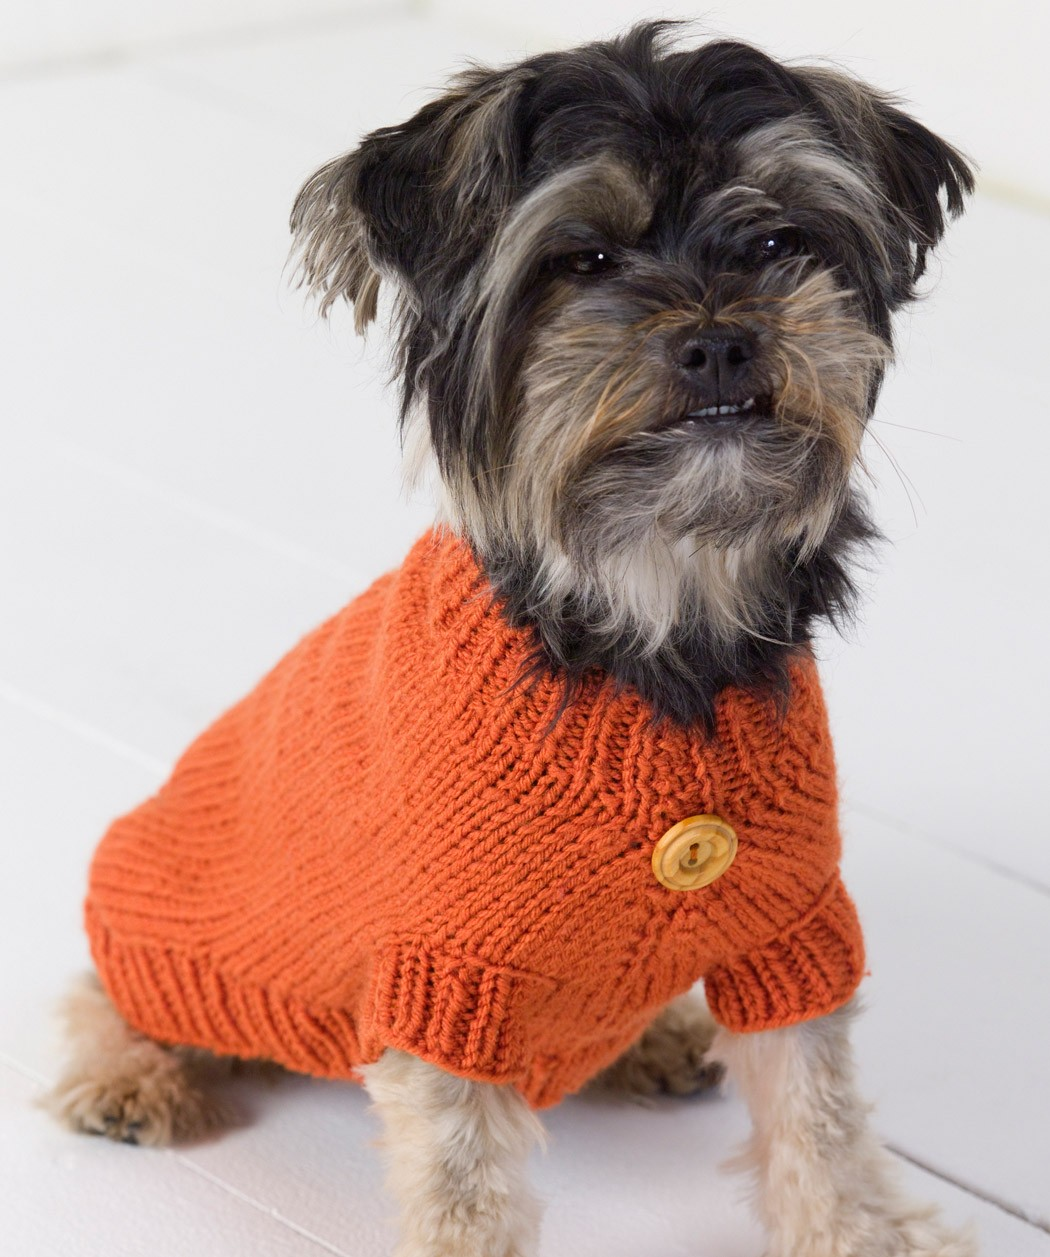 Knitted Dog Sweaters Free Patterns : Dog Sweater Knitting Pattern A Knitting Blog